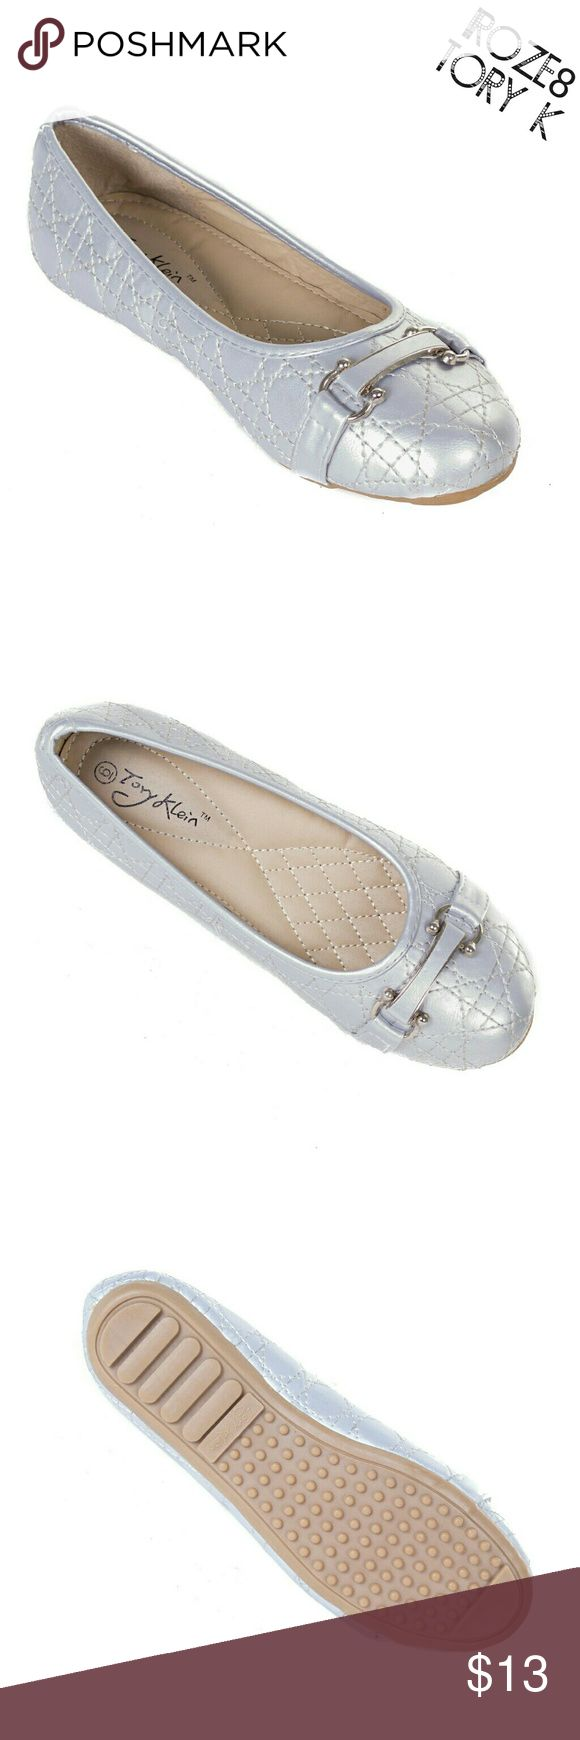 "Women Stitched Buckle Flats, b-1639, Silver Brand new Tory Klein woman ballerina flats in lovely silver with a horseshoe buckle (for luck!) and intricate stitched design. Soft cushioned sole, very comfortable. Bubbled bottom sole for extra traction. A true staple in ladies shoes fashion! Measurements: size 7 measures 9.5"", sz 7.5 - 9 3/4"", sz 8 - 10"", sz 8.5 - 10 1/4"", sz 9 - 10.5"", all half sizes are in 1/4"" increments of each other. Tory K  Shoes Flats & Loafers"